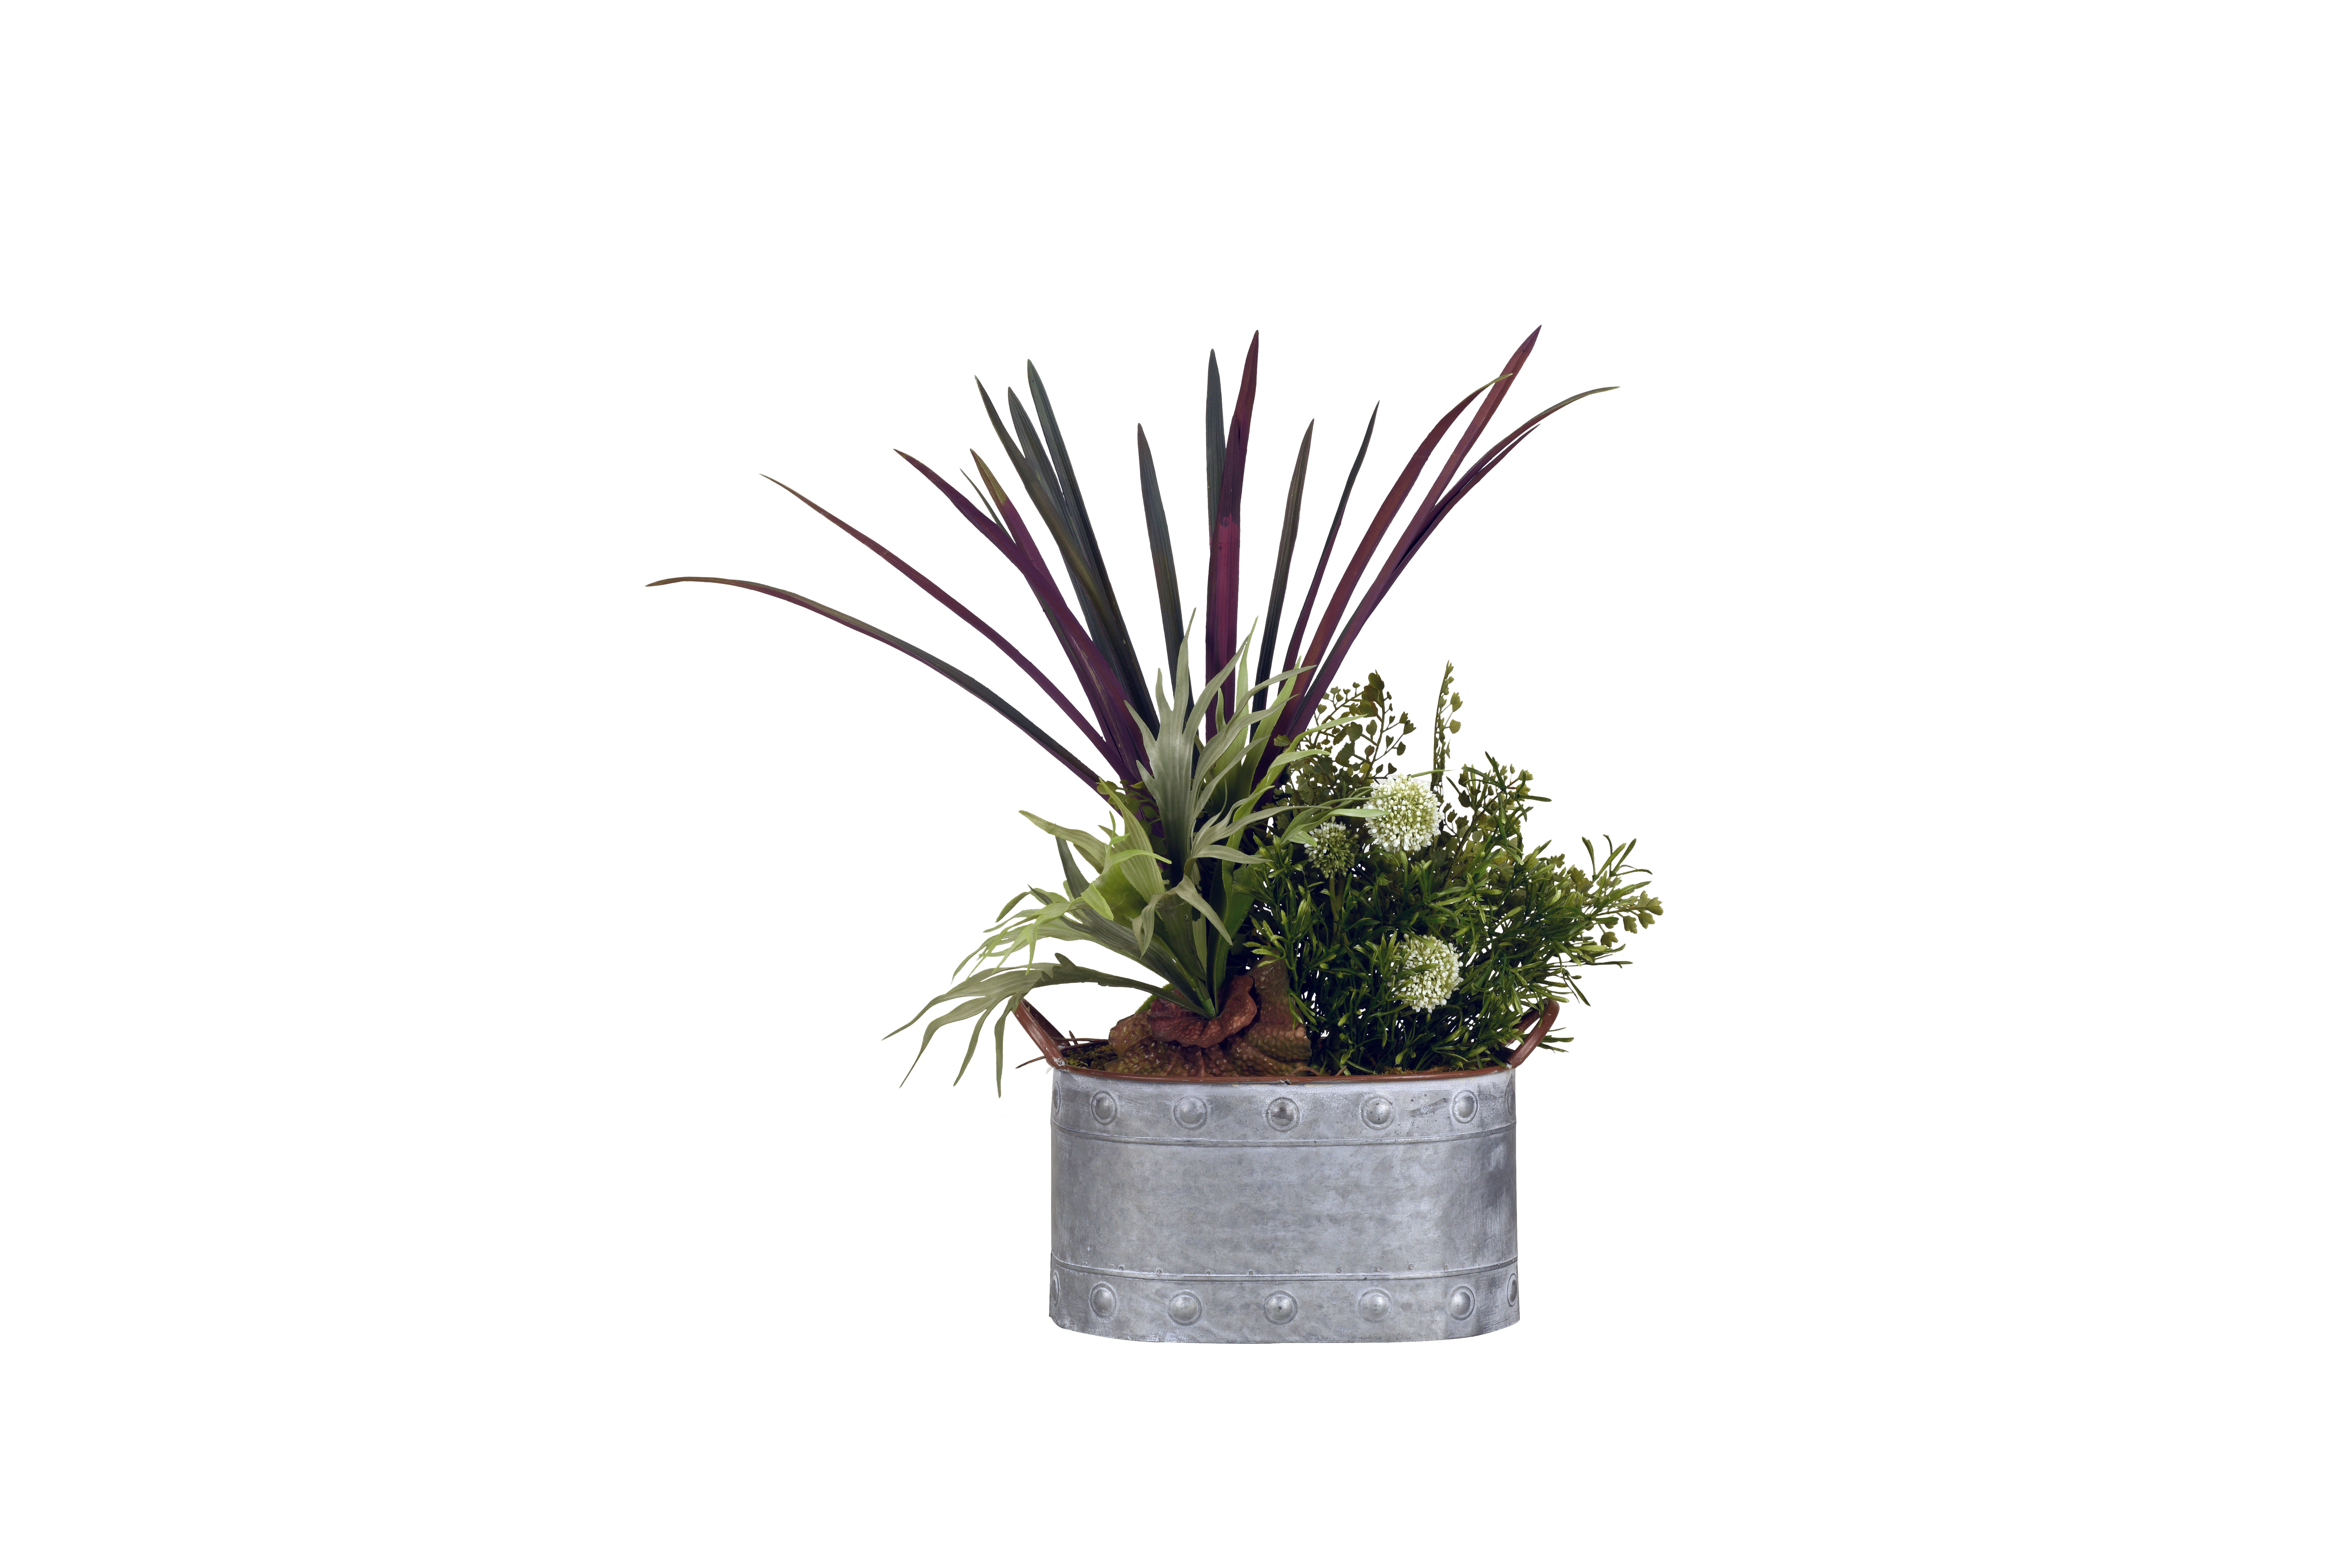 D W Silks Mini Staghorn Fern And Areca Grass In Oval Metal Planter Walmart Com Walmart Com